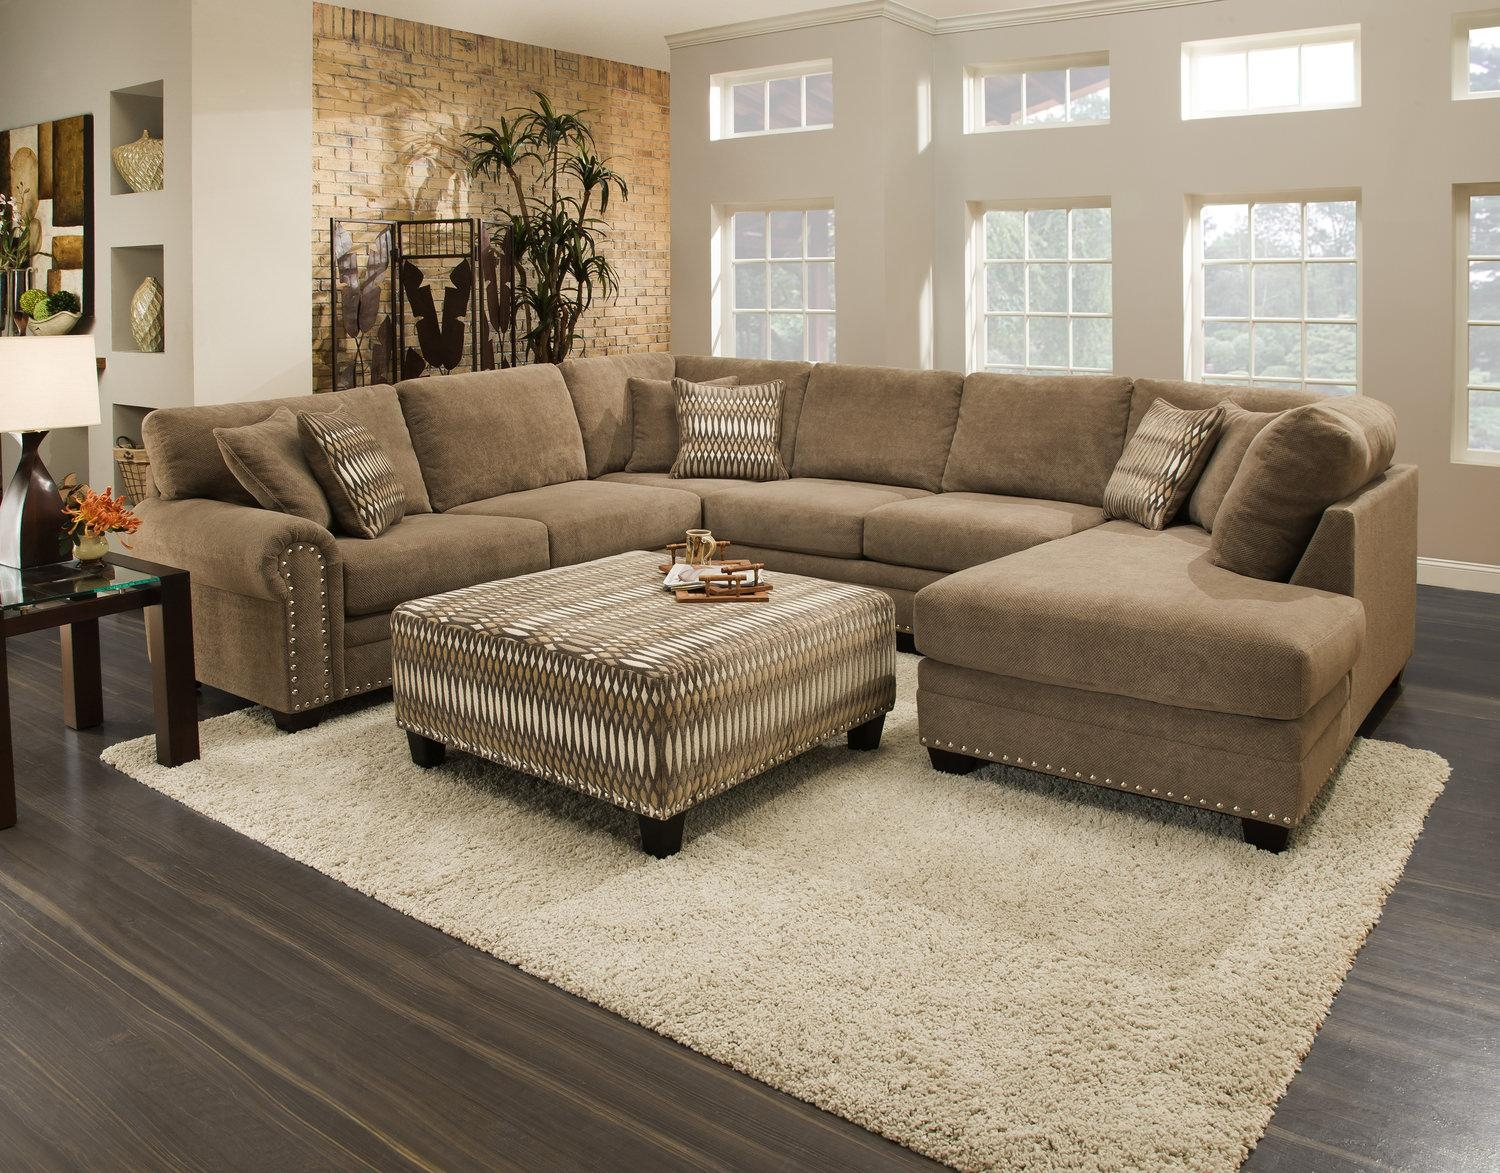 Sectional Sofas – Living Room Seating – Hom Furniture For Angled Chaise Sofa (Image 13 of 20)